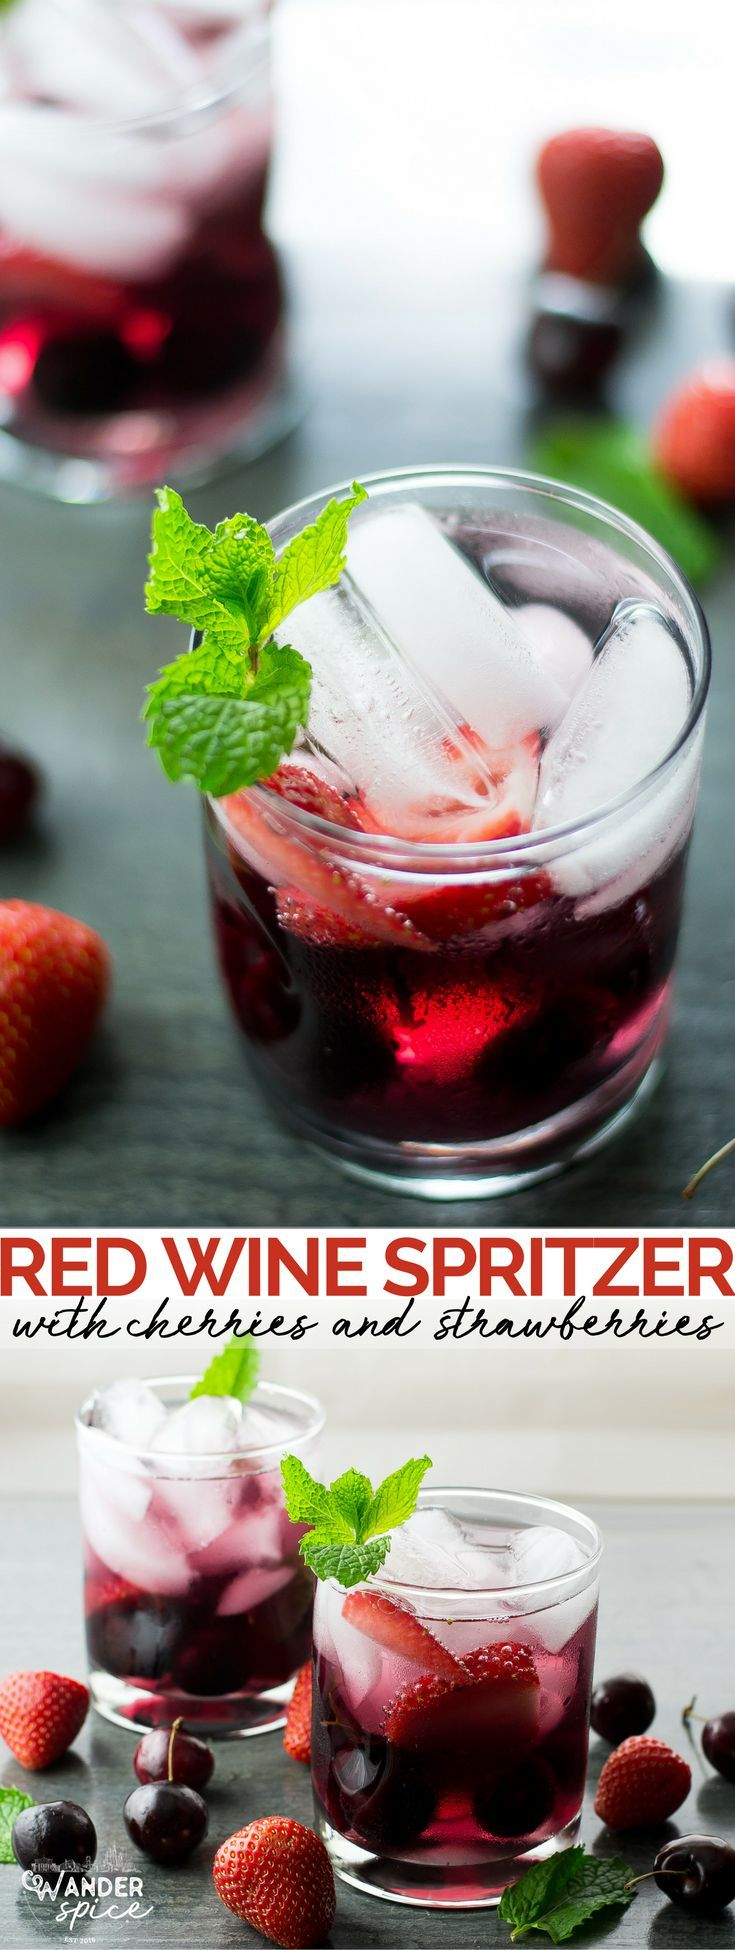 Red Wine Spritzer with Cherries and Strawberries. Red Wine | Cherries | Strawberries | Spritzer